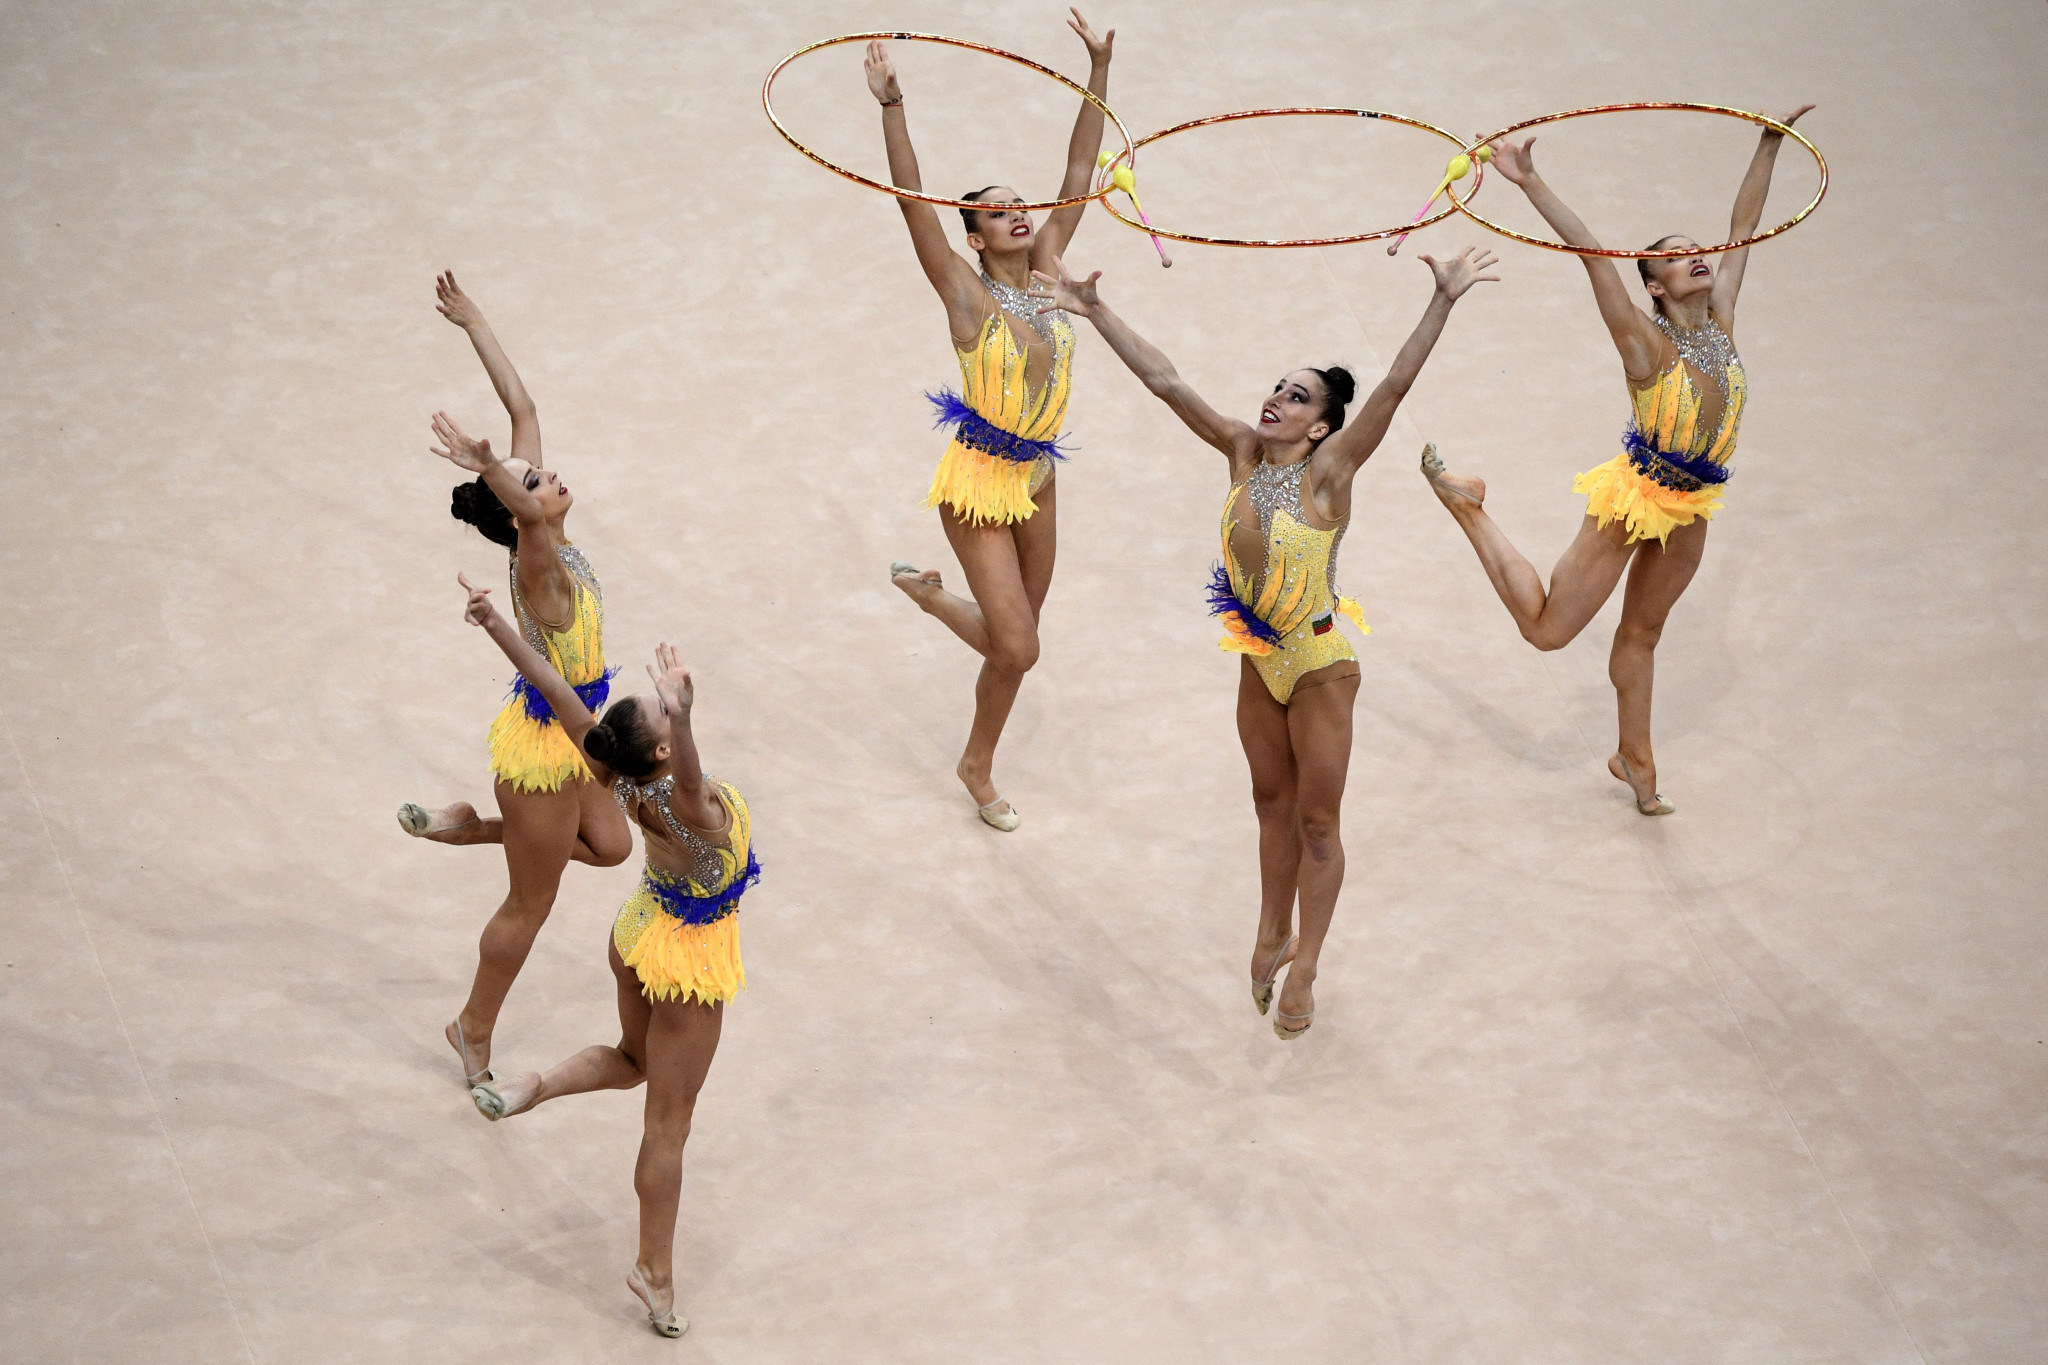 Bulgaria withdraw from group events at European Rhythmic Gymnastics Championships